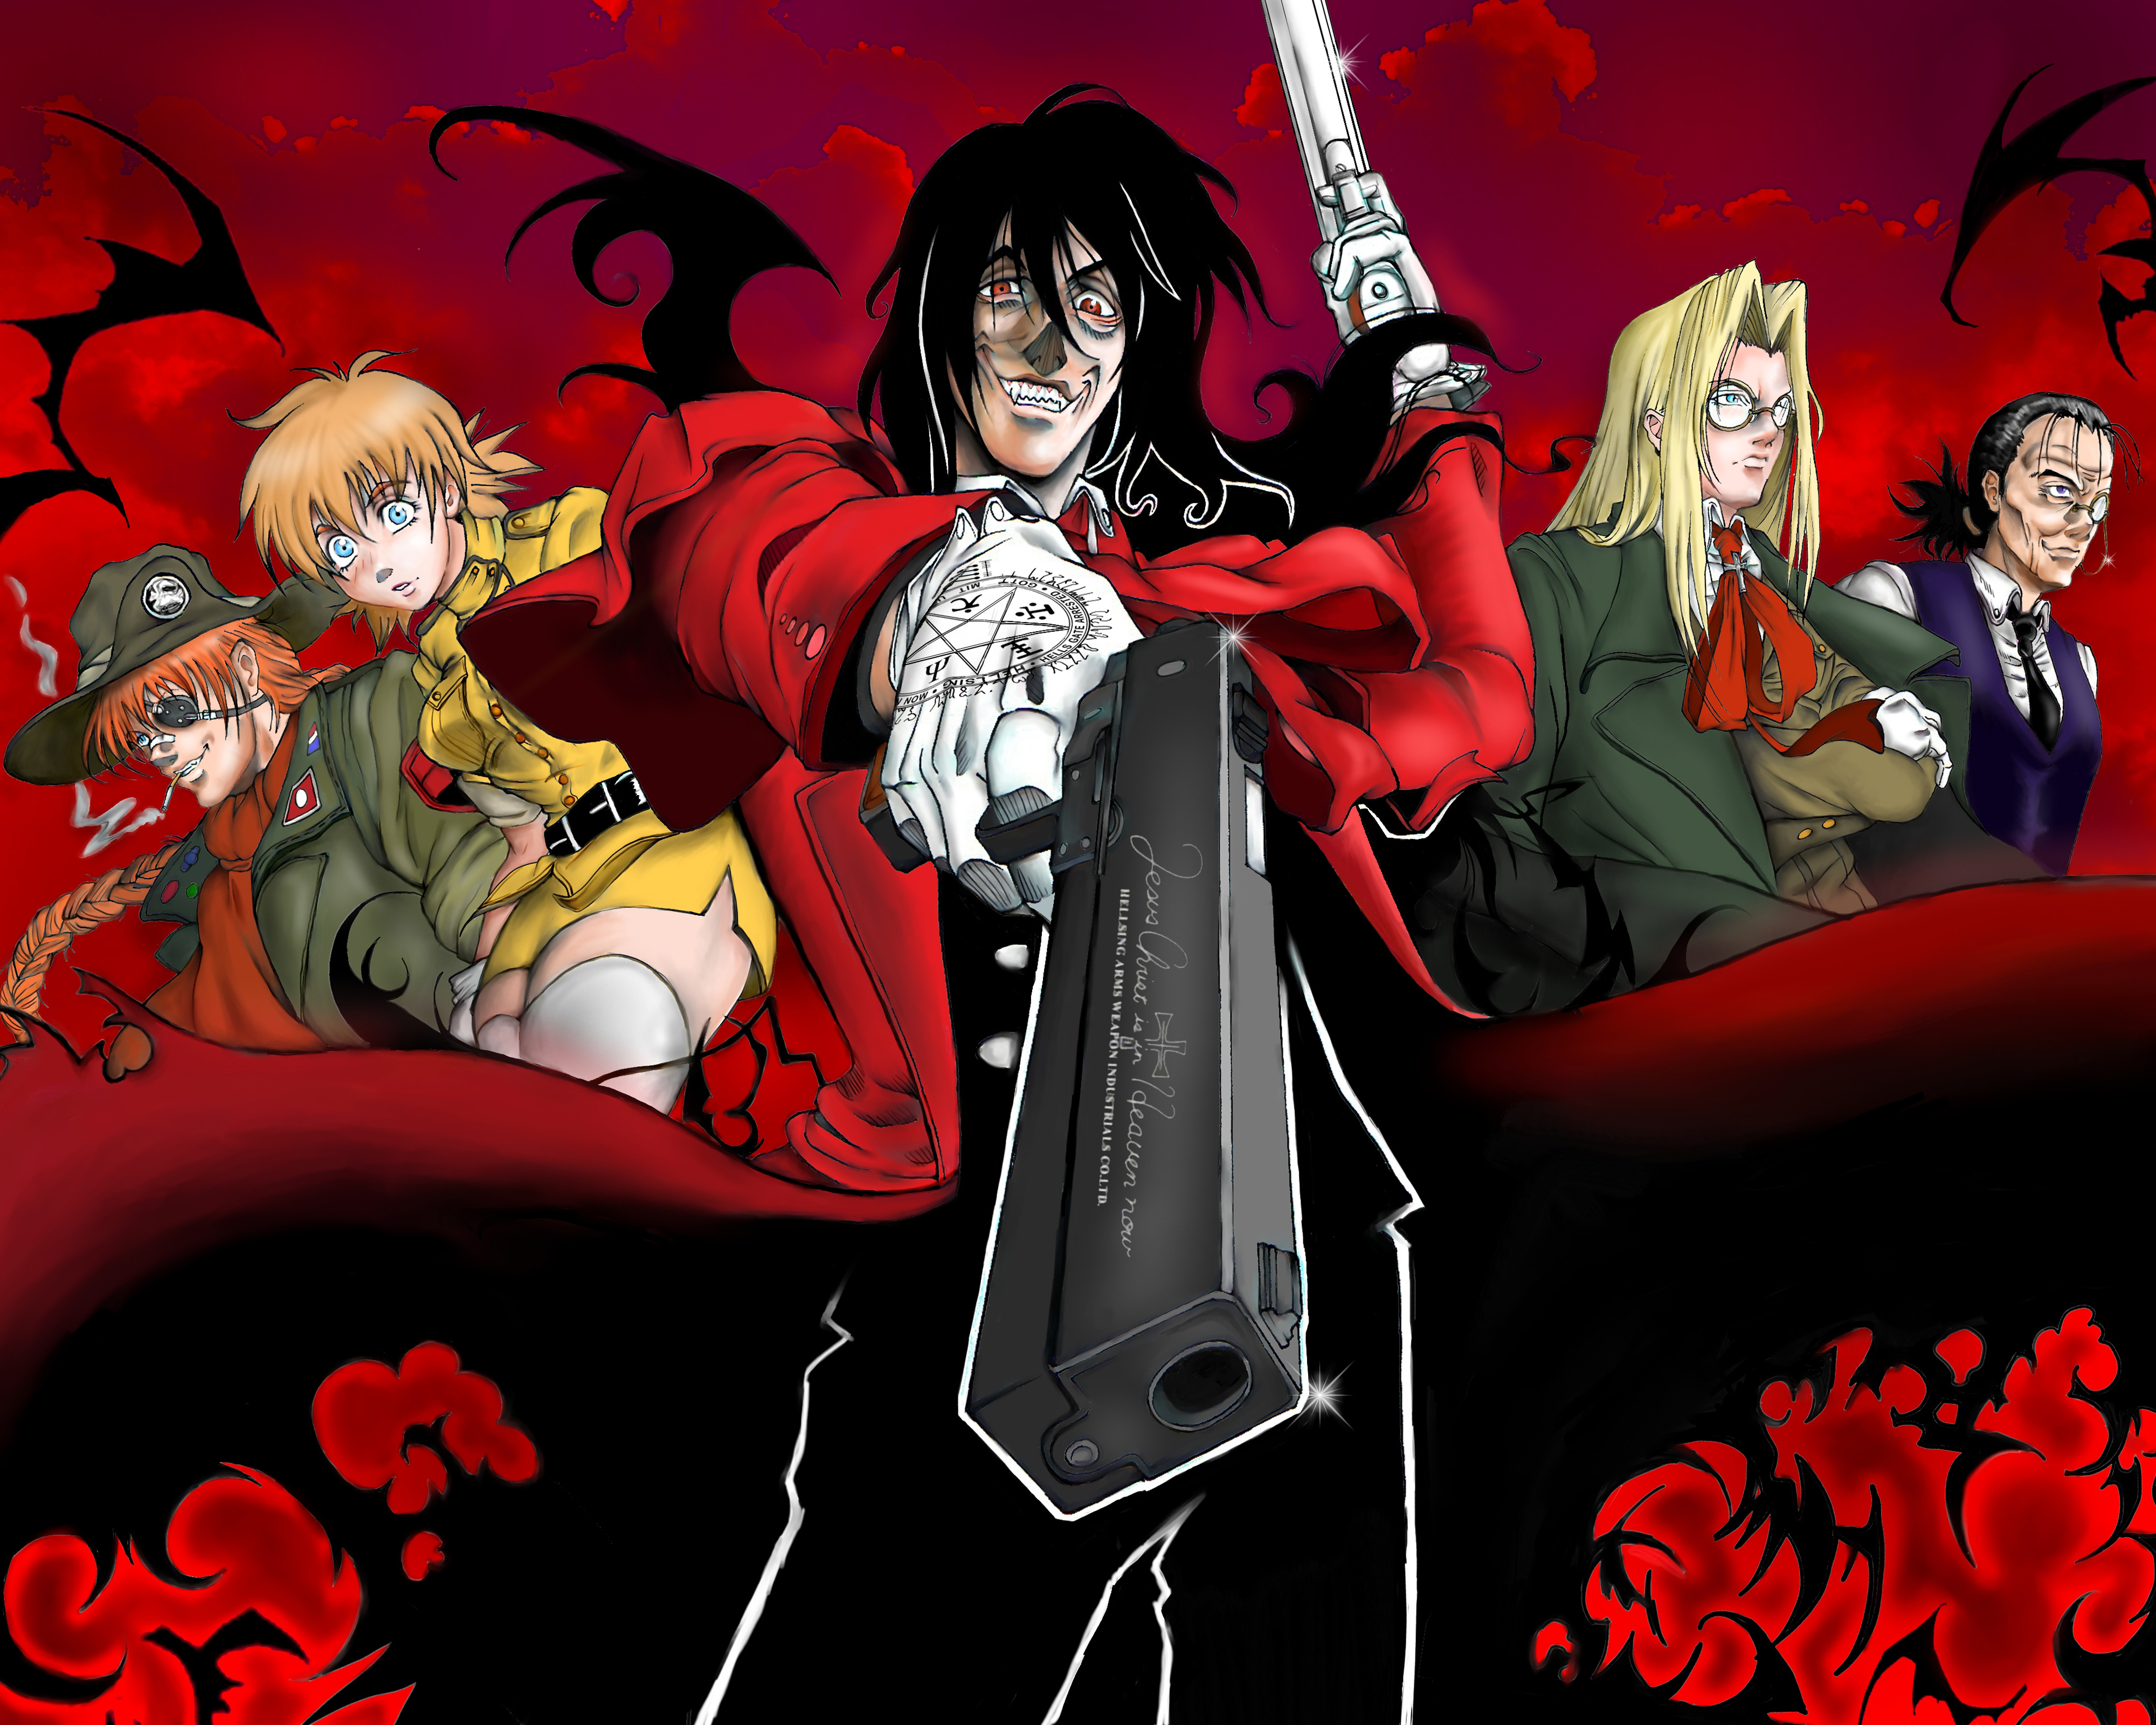 Hellsing 4k ultra hd wallpaper and background image - Anime hellsing wallpaper ...